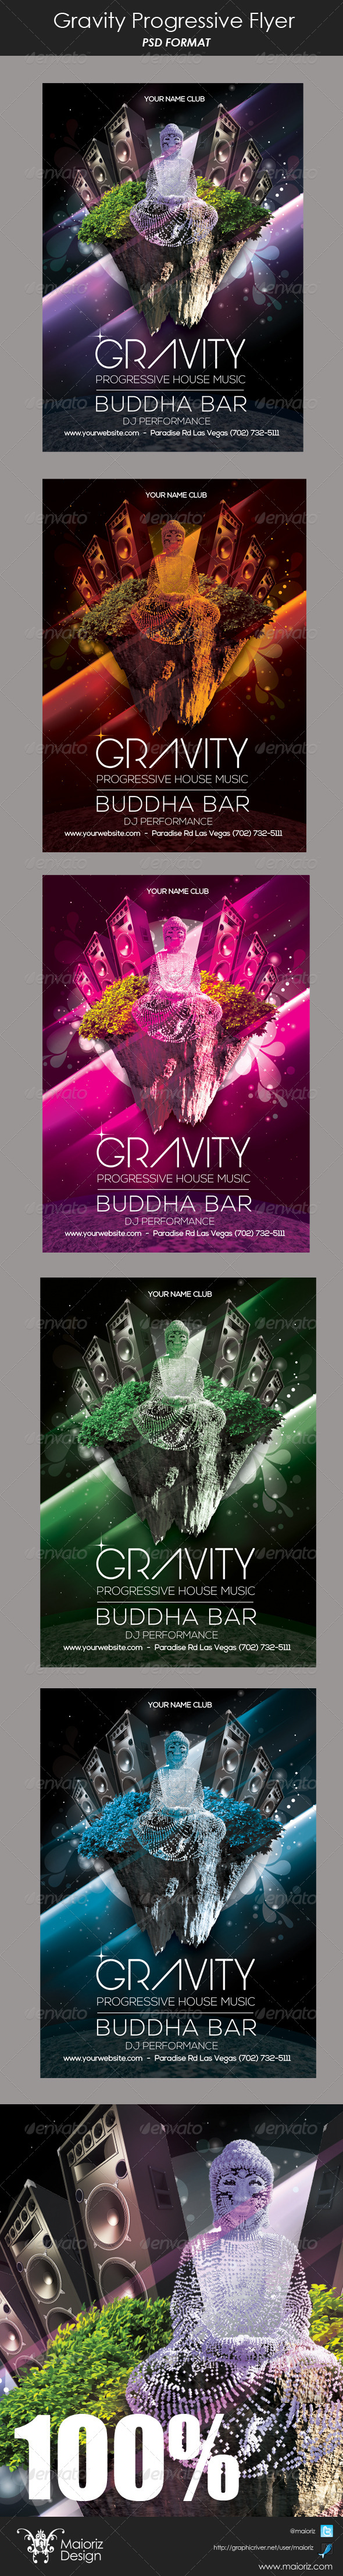 Gravity Pregressive Flyer - Clubs & Parties Events